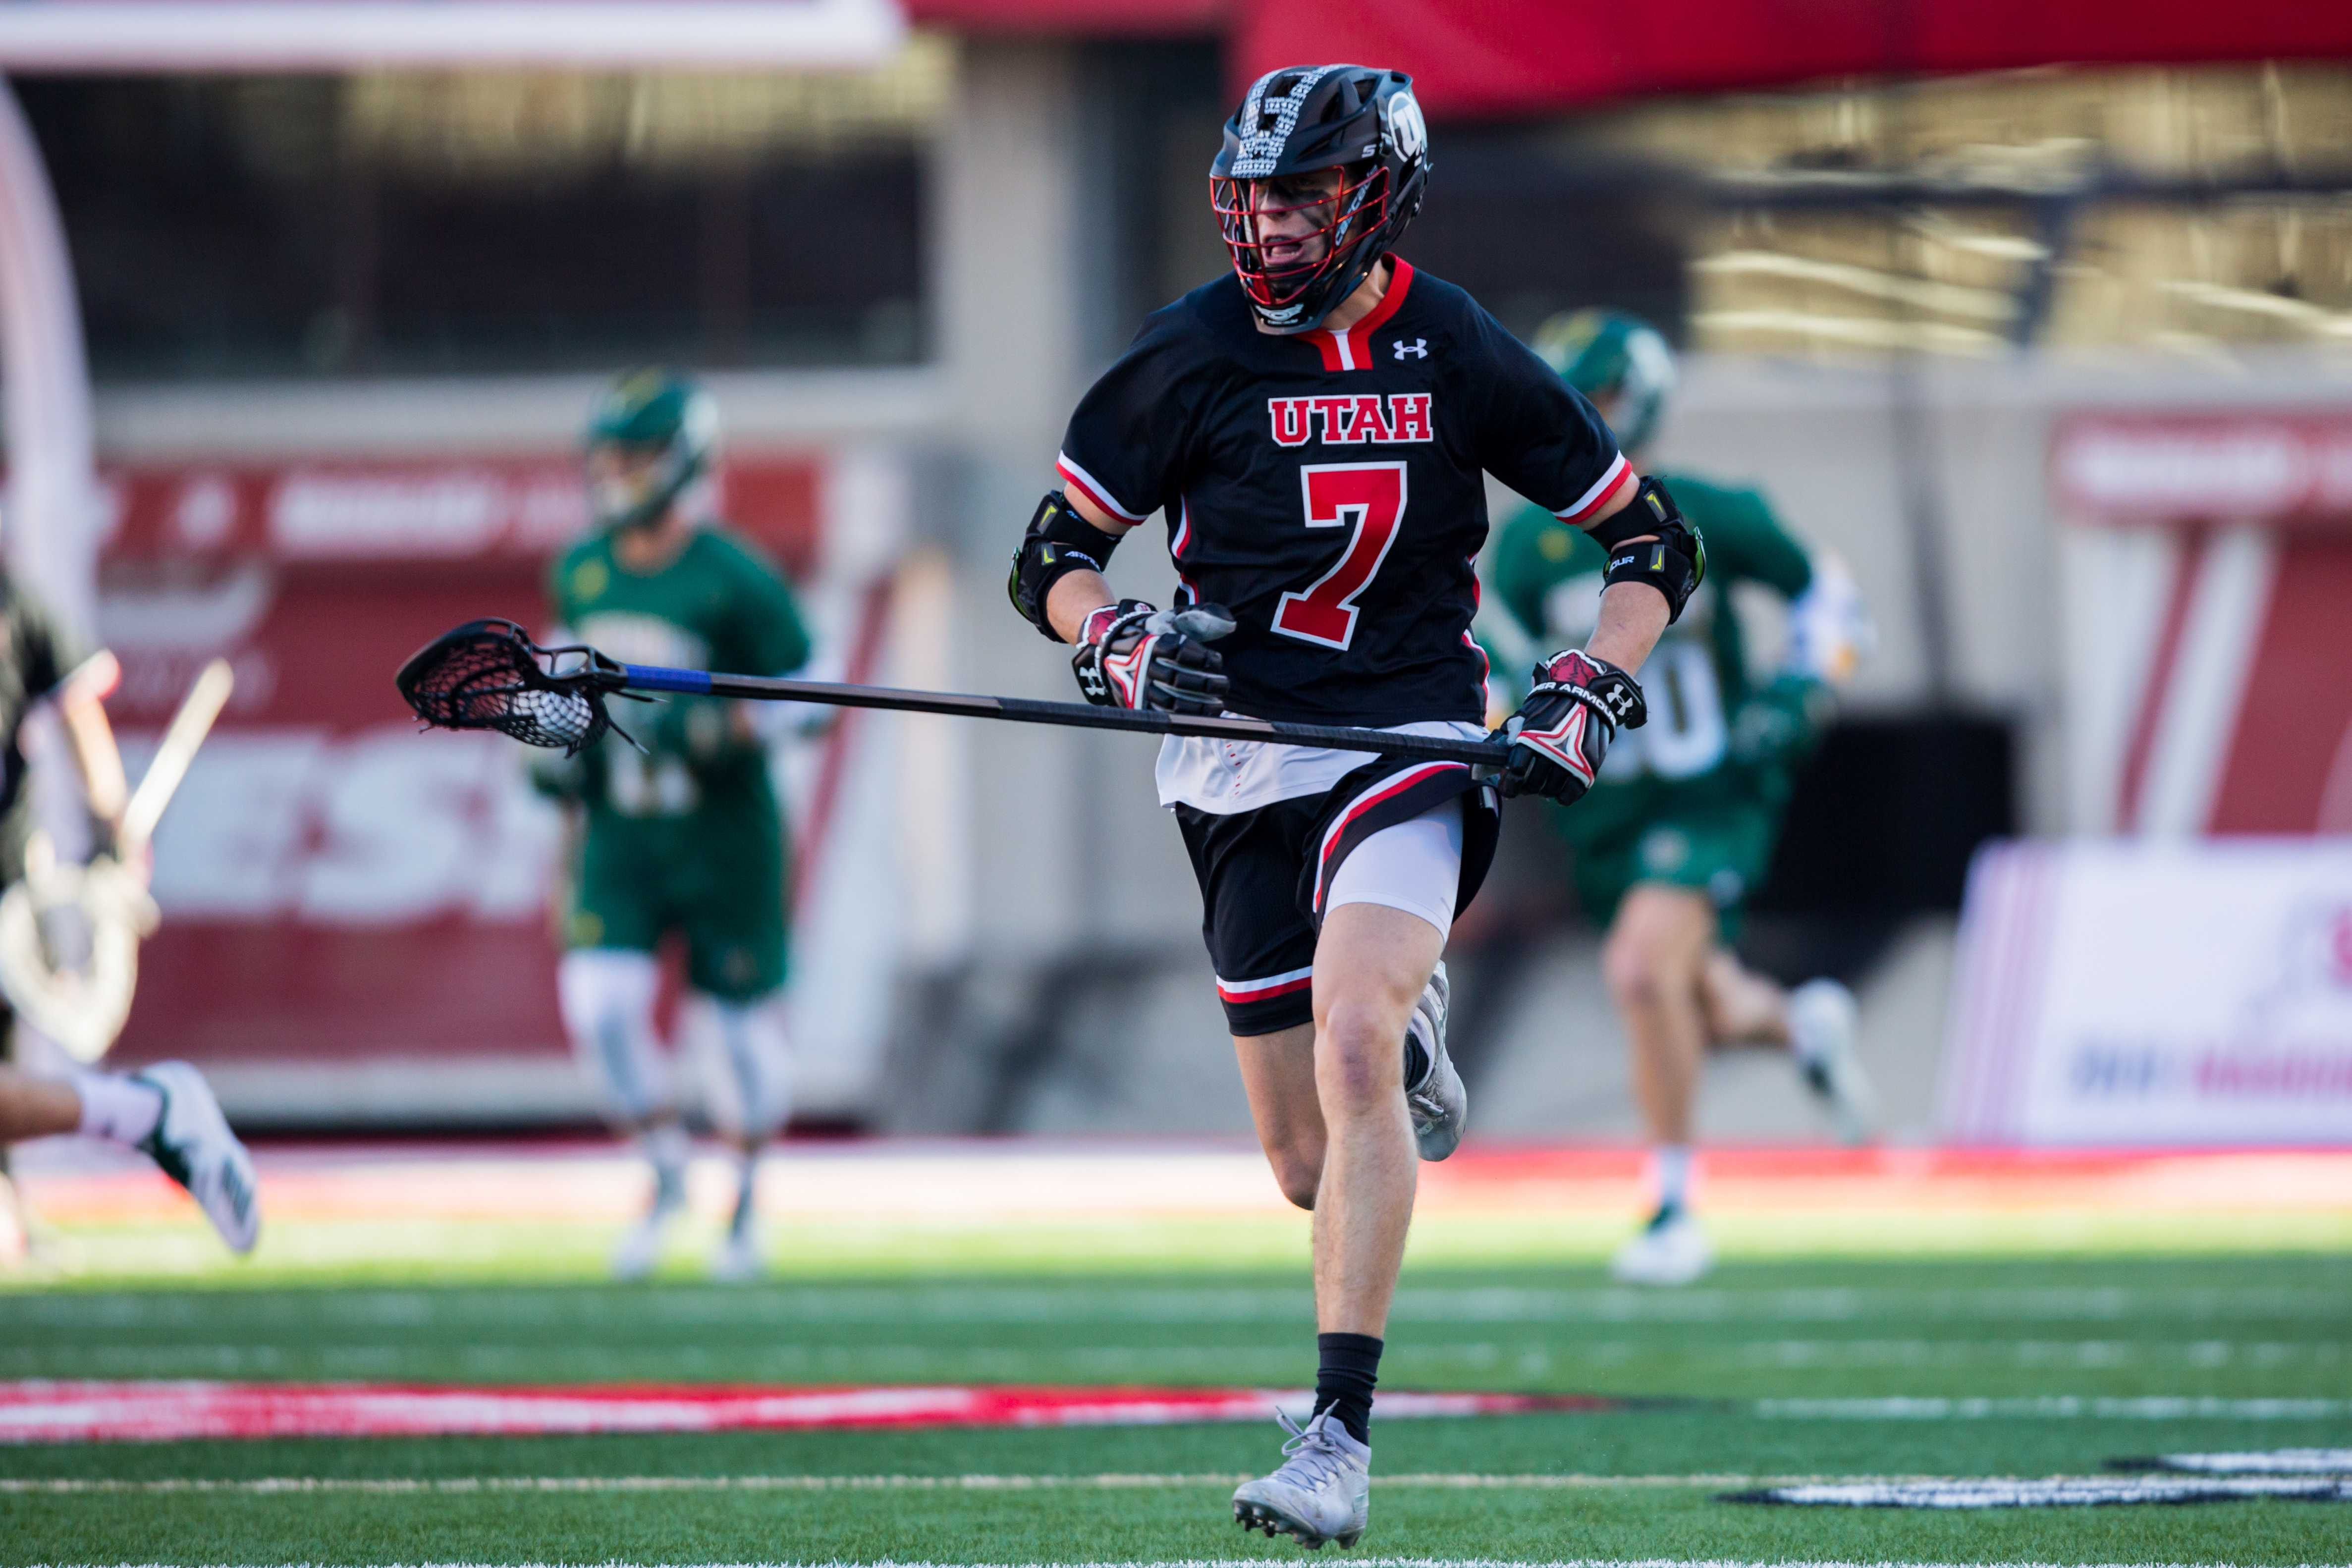 University of Utah freshman long stick middie Chris Belcher (7) ran the ball up field in an NCAA Men's Lacrosse game vs. Vermont at Rice-Eccles Stadium in Salt Lake City, UT on Friday February 01, 2019.  (Photo by Curtis Lin | Daily Utah Chronicle)